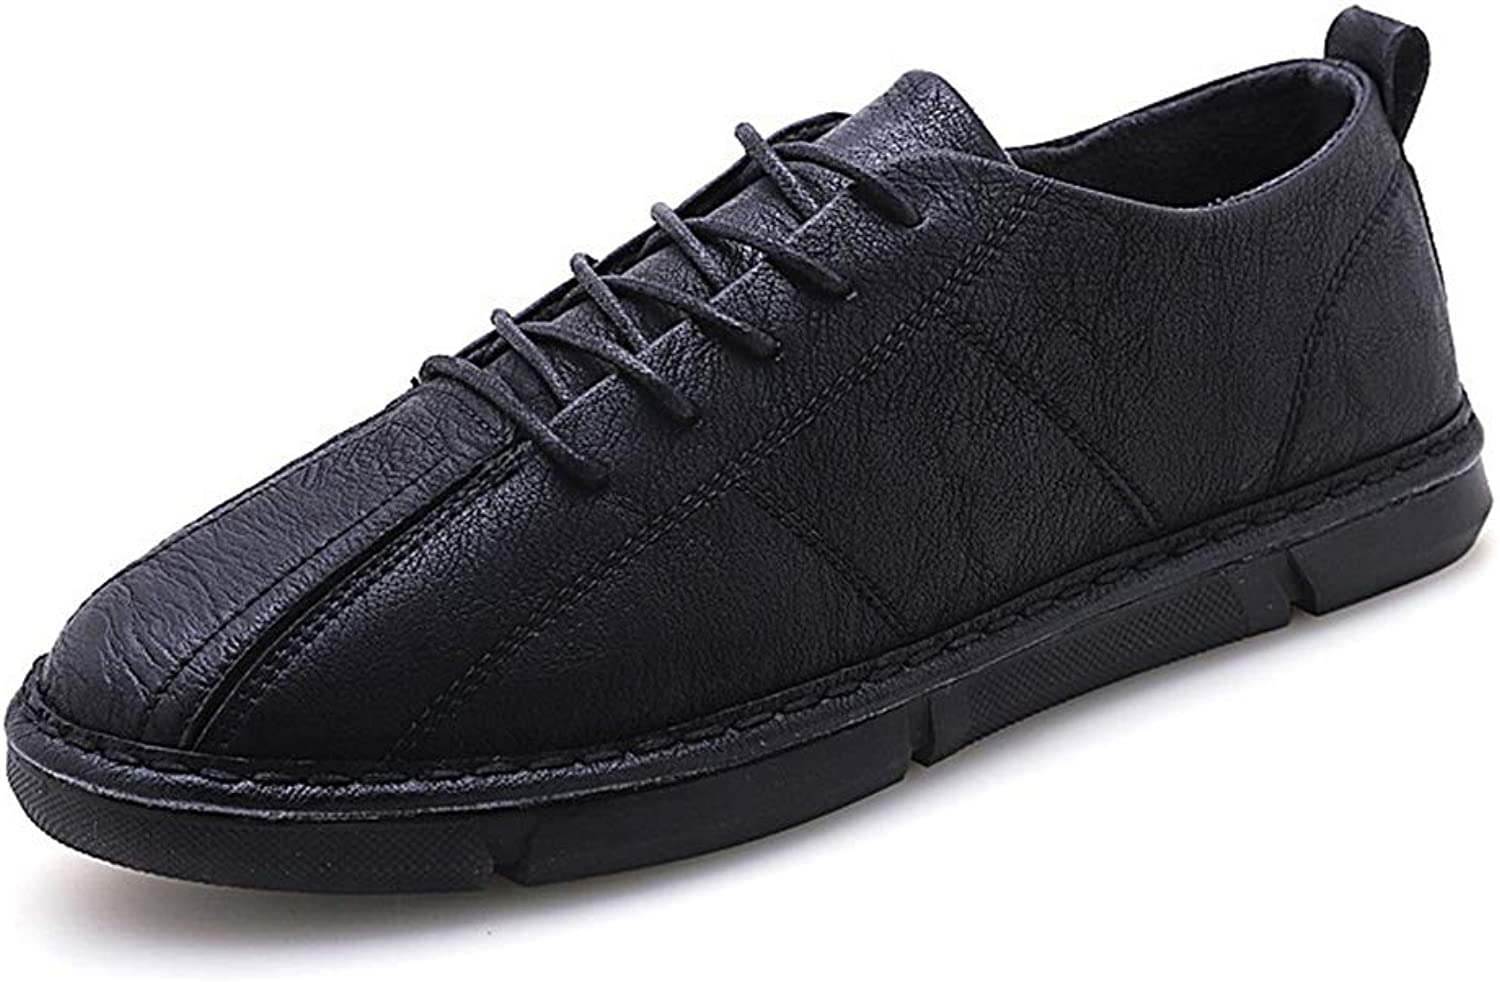 Mens Casual shoes Formal Business shoes Office & Career Party & Evening,Black,43